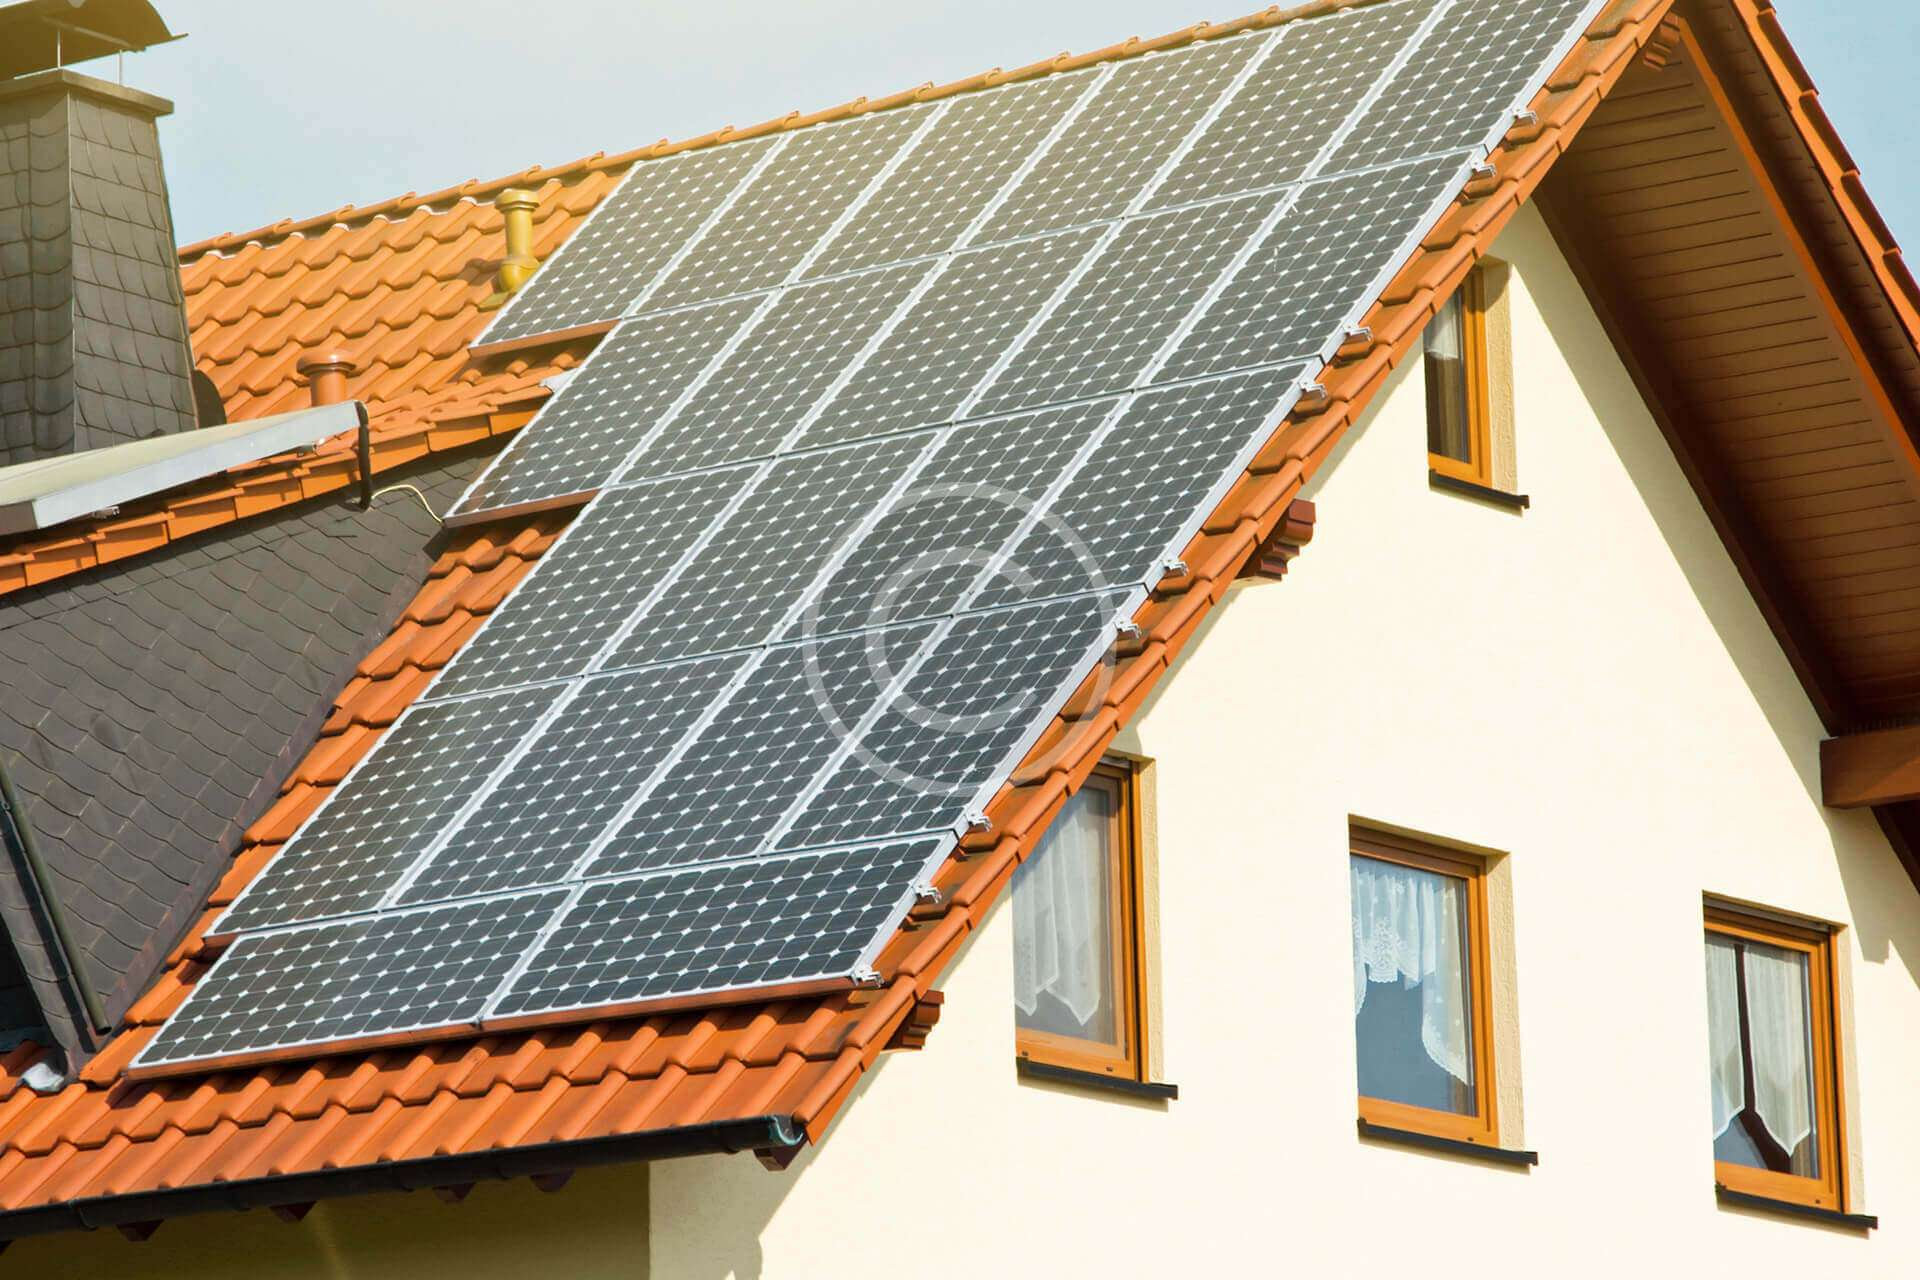 Installing and Maintaining a Home Solar Electric System